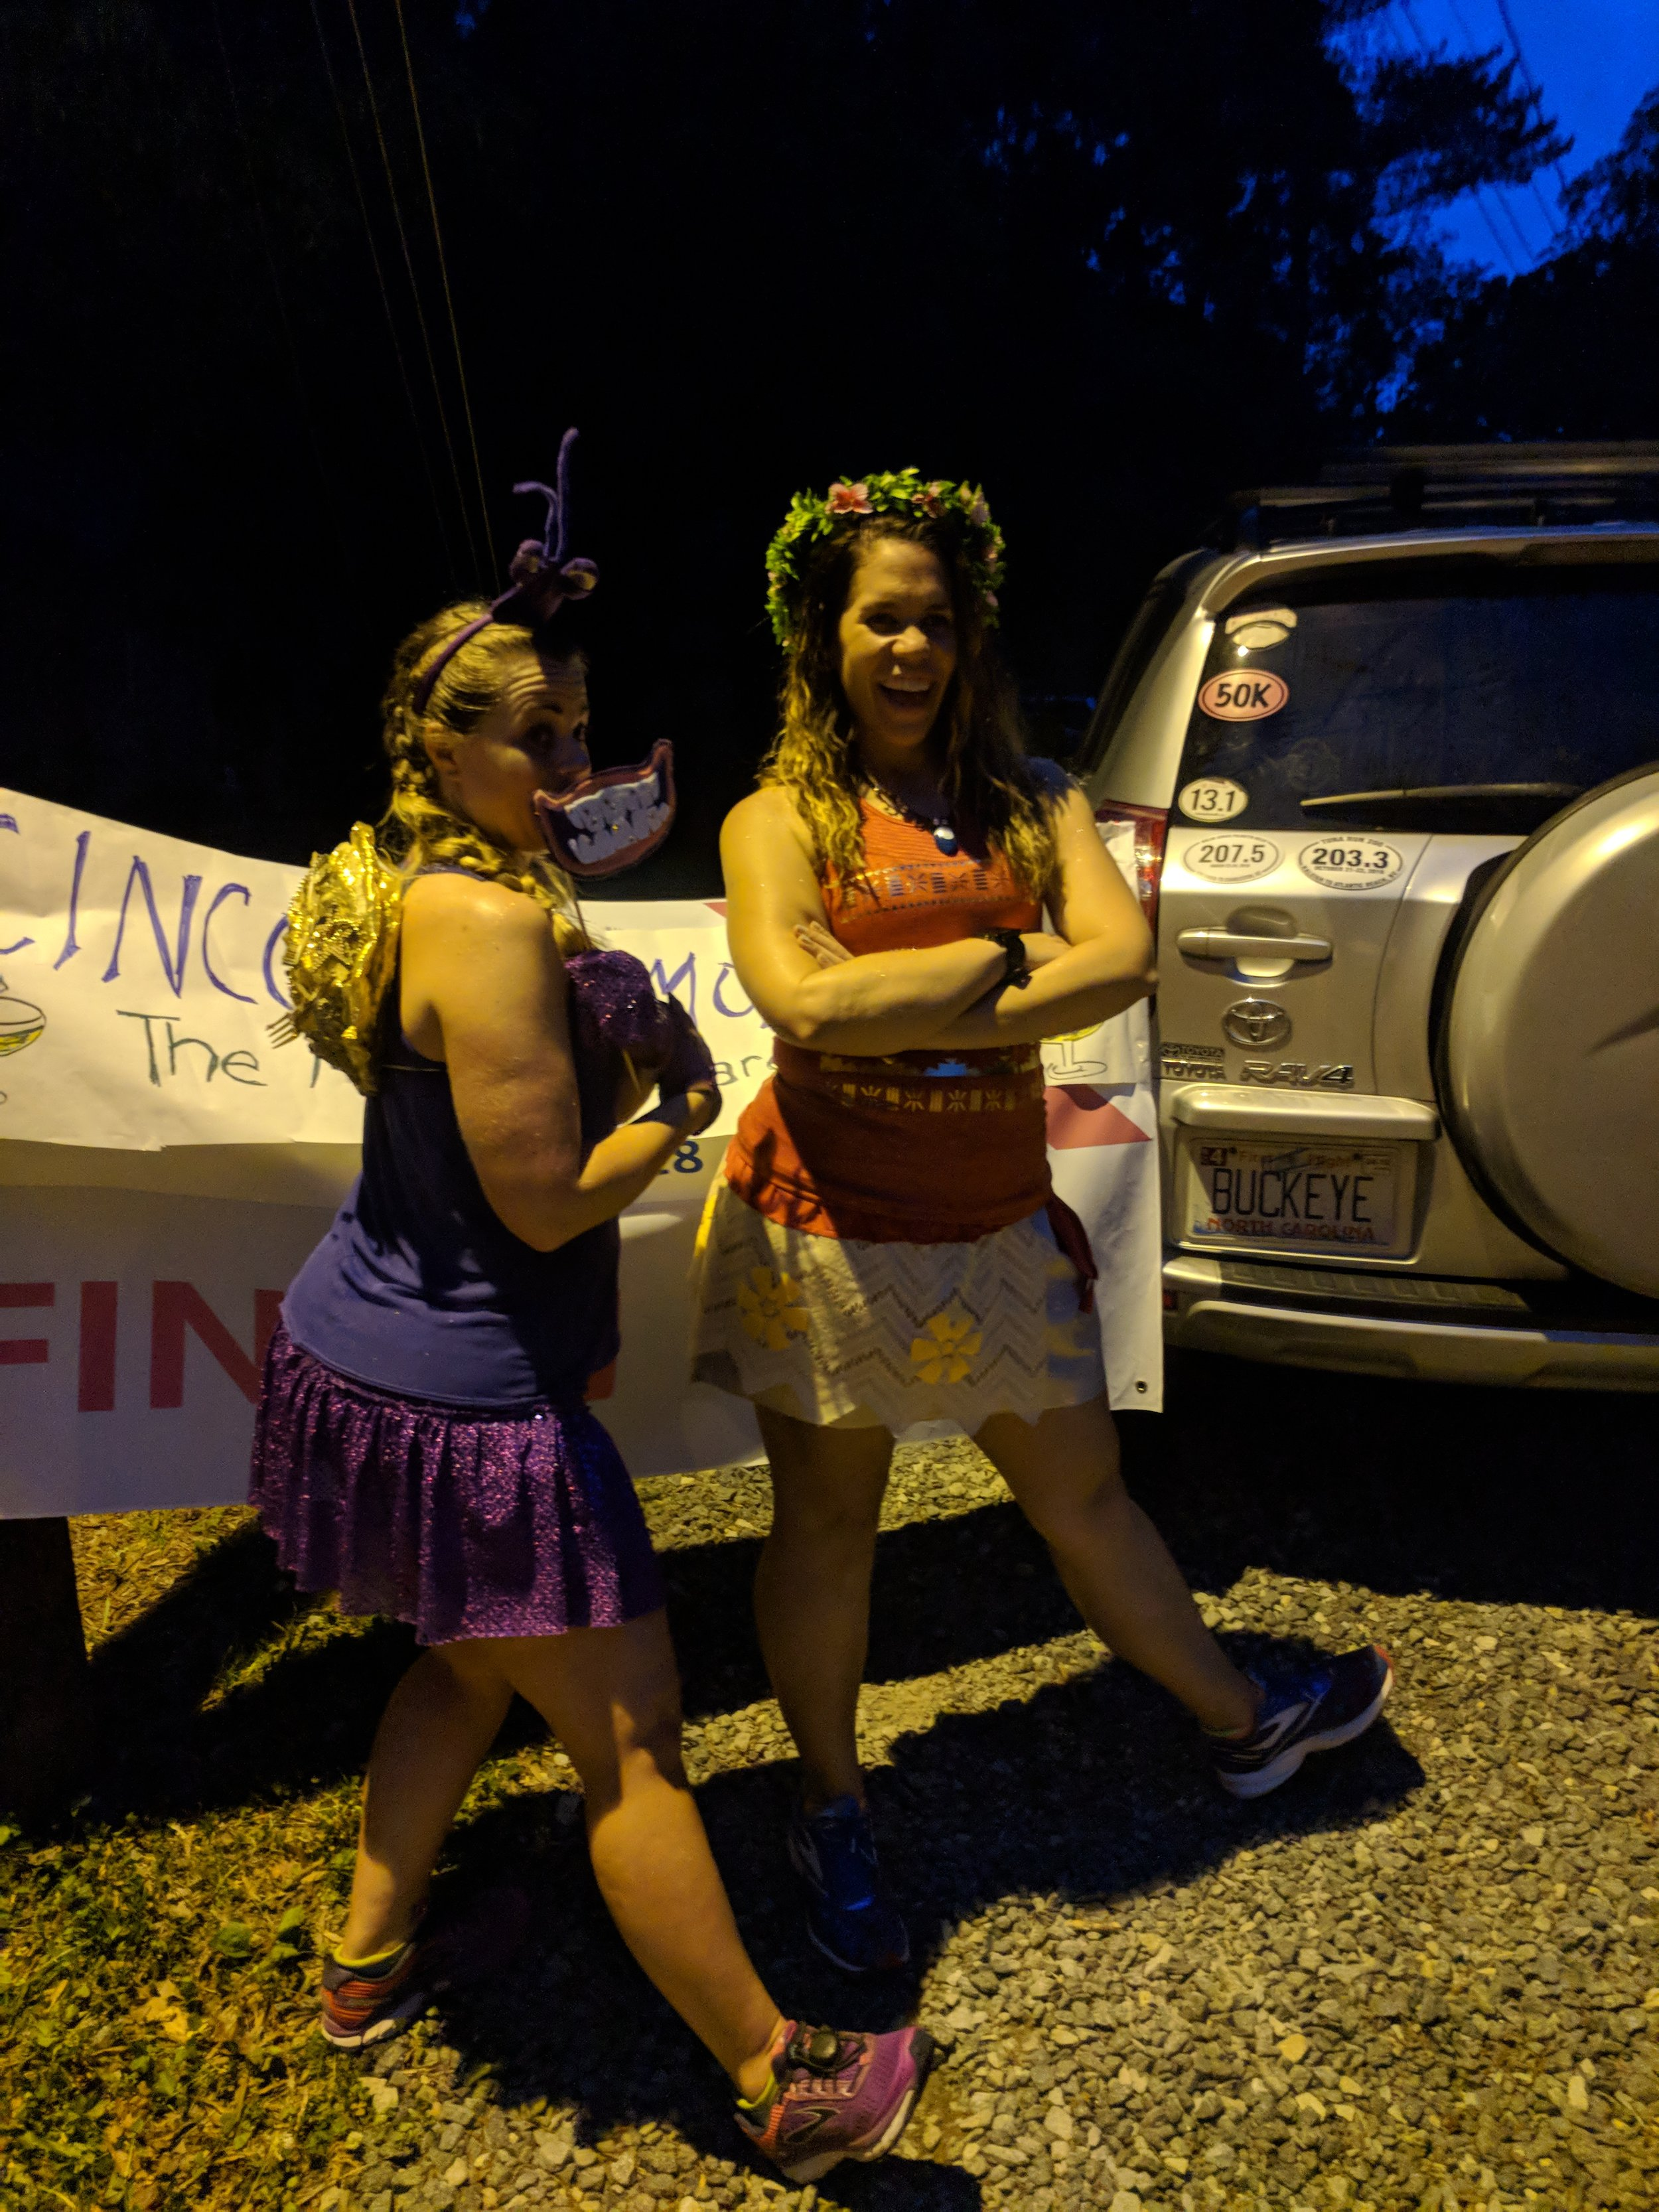 """The race was Moana-themed, so Heather dressed up as the crab (""""I'm shiny!!"""") and Jill had an awesome Moana outfit!"""